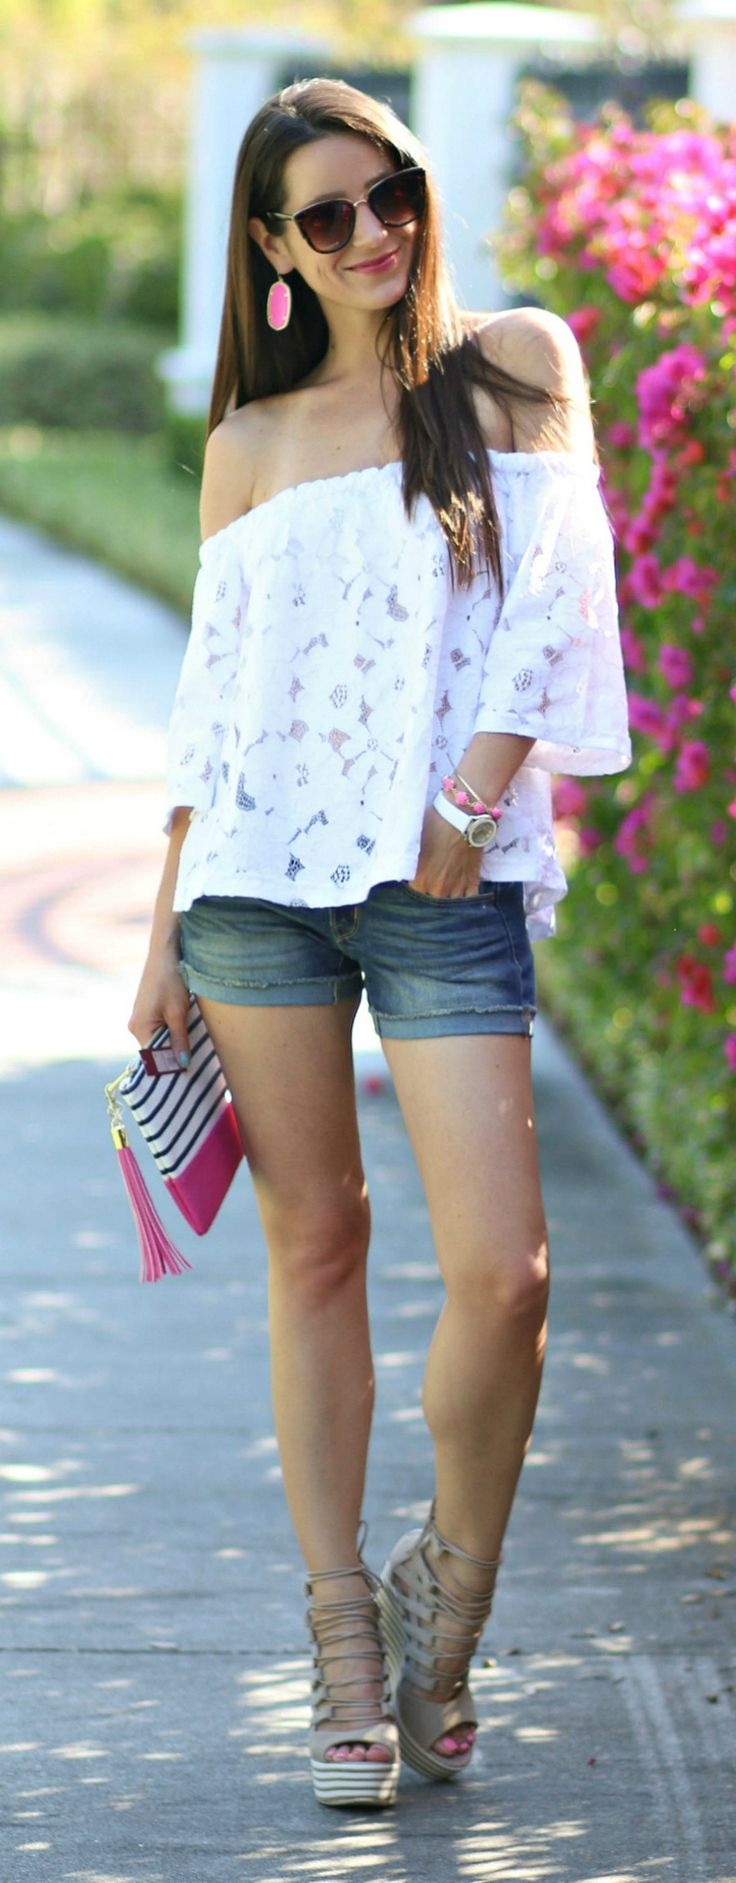 150+ Pretty Casual Shorts Summer Outfit Combinations